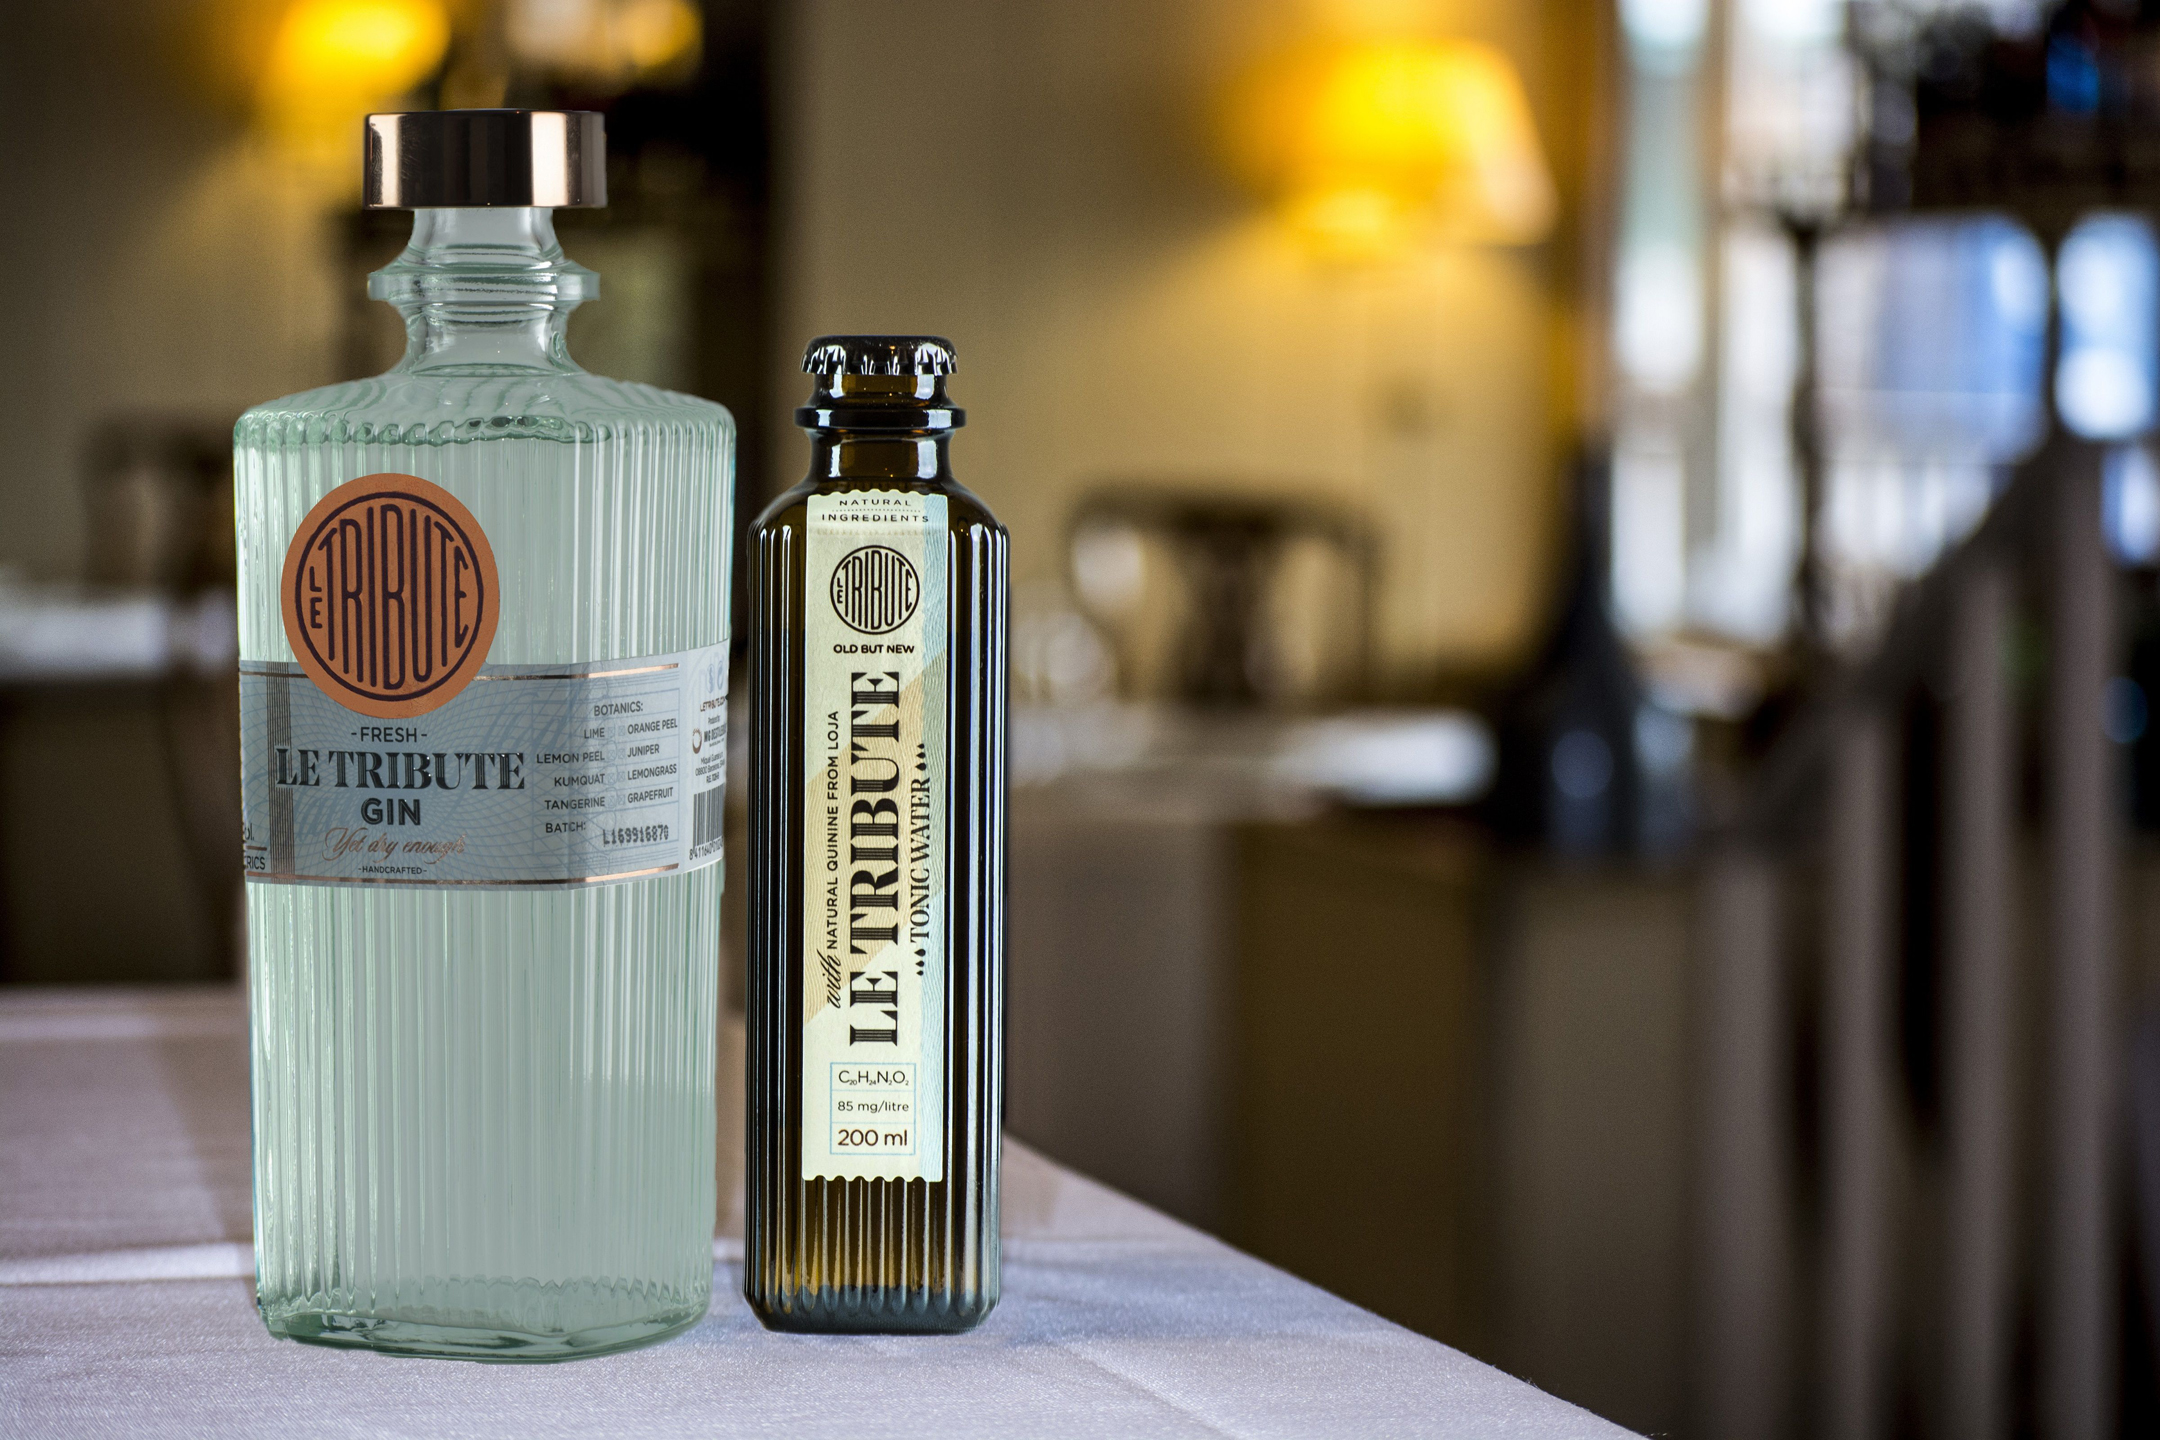 Le Tribute Gin and Le Tribute Tonic Water